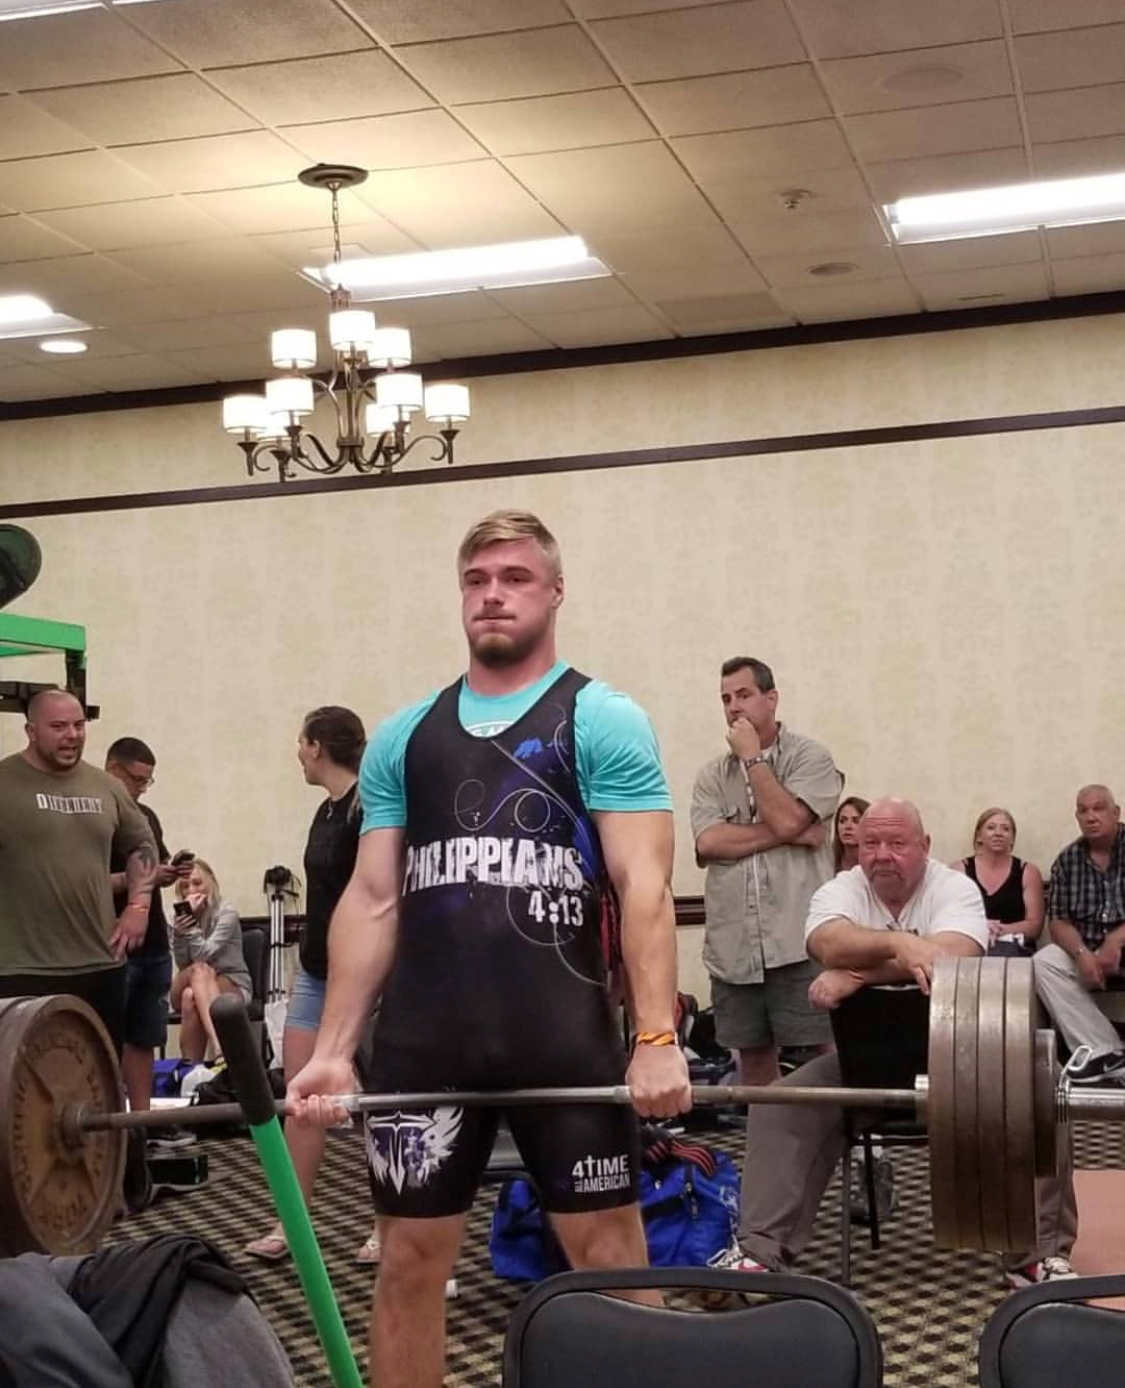 Senior Noah Strine pulls 515 pounds in his state record deadlift. On that day, Strine also set a world bench press record for his age.